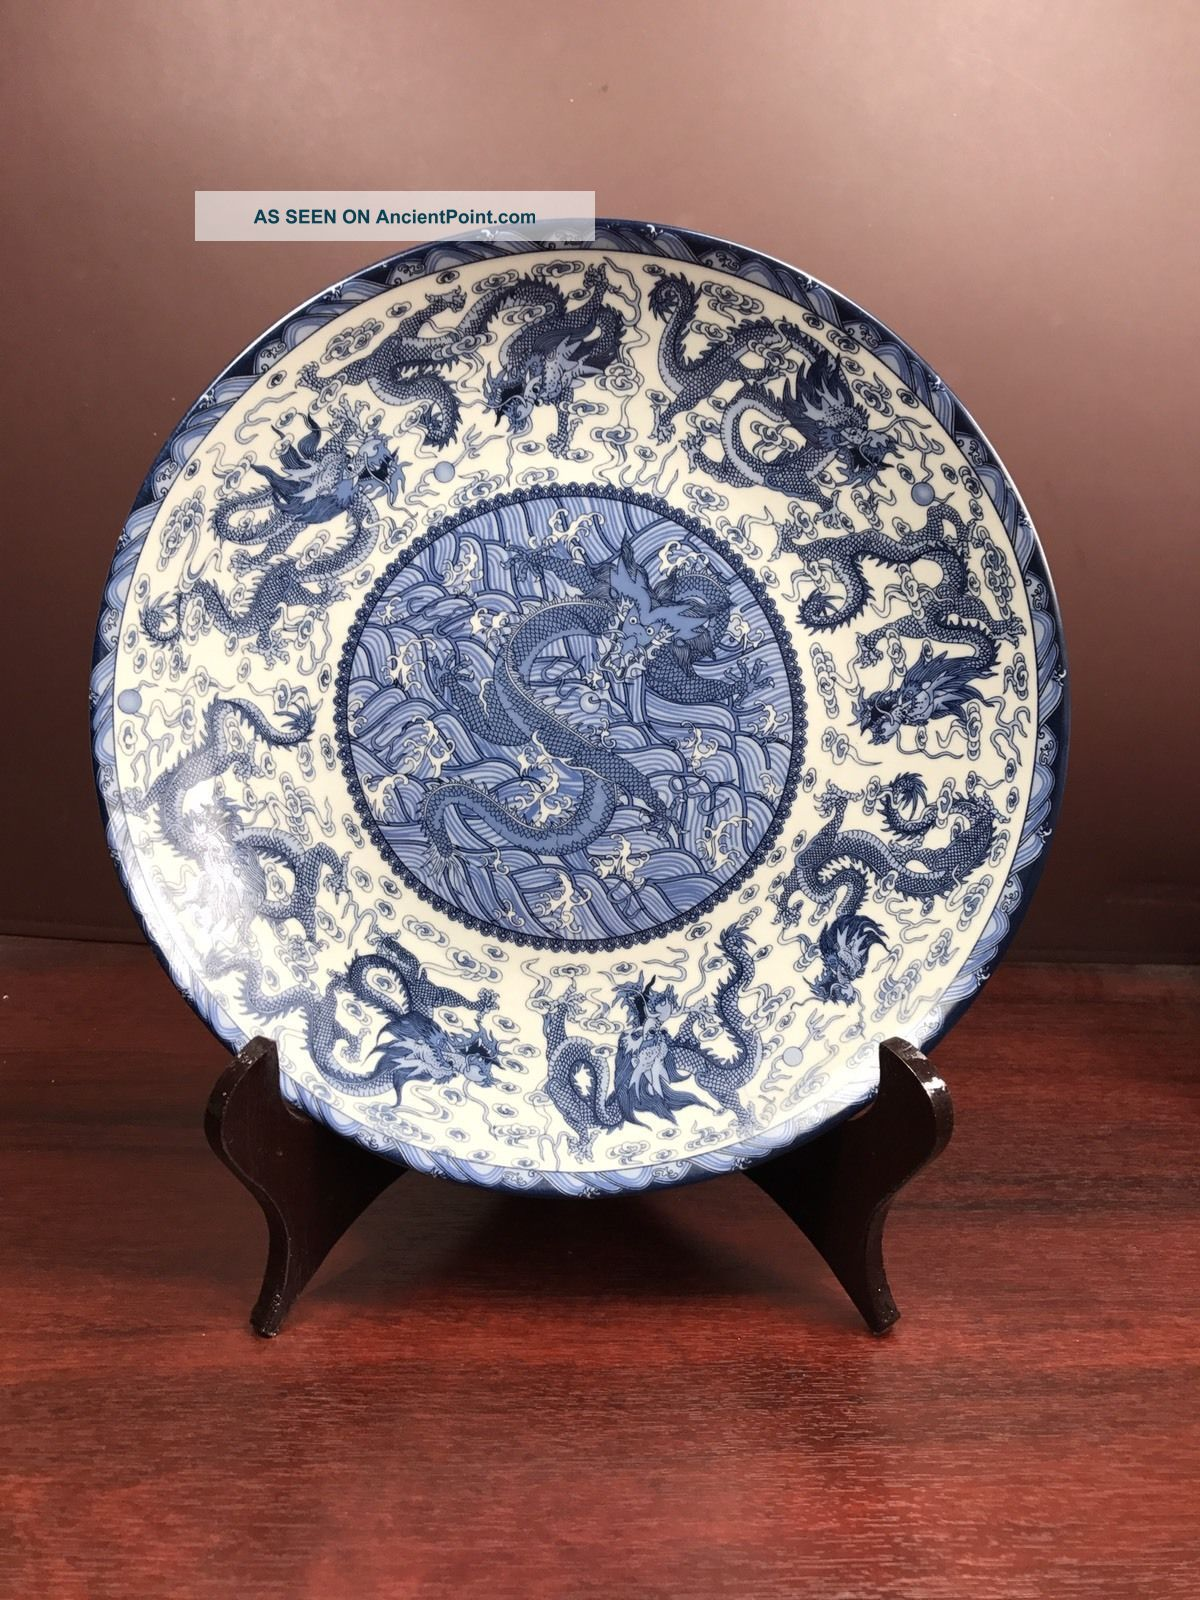 Handmade Chinese Nine Dragon Round Plates (with Stand) Vases photo